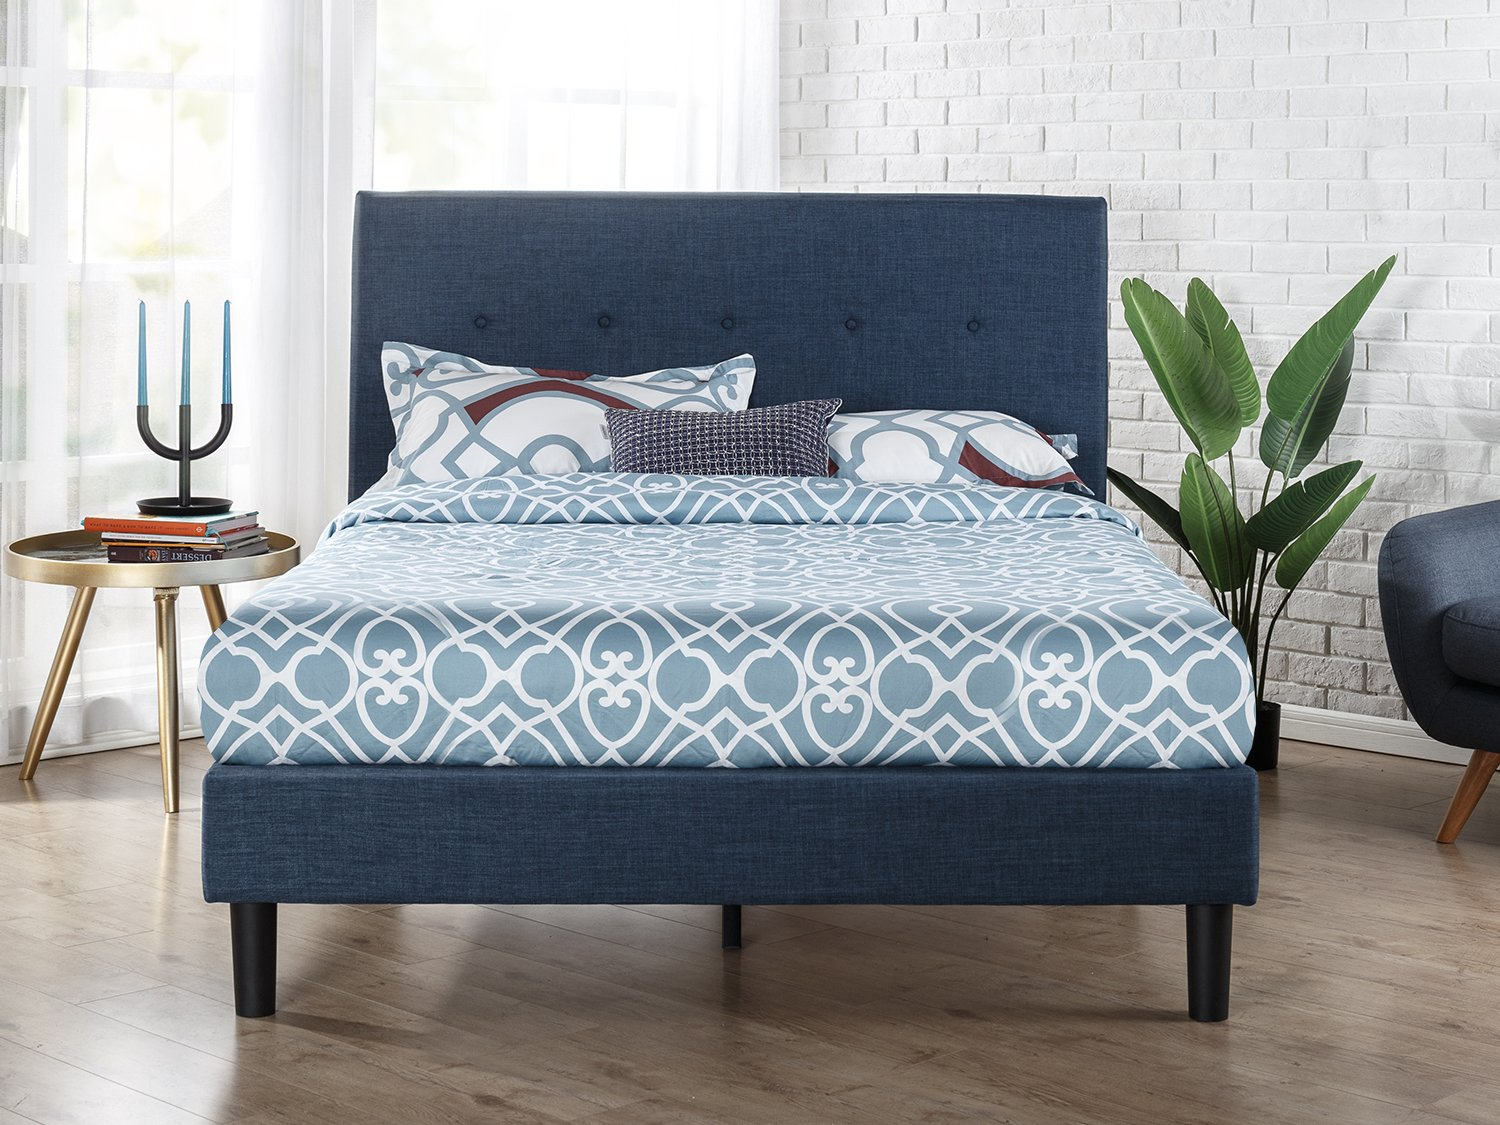 Zinus Omkaram Upholstered Navy Button Detailed Platform Bed / Mattress Foundation / Easy Assembly / Strong Wood Slat Support, King - Classic styling with navy upholstery Headboard, frame, and wood slats included / Mattress sold separately Smartly packaged in one carton with the footboard, frame, legs, and wooden slats conveniently located in the zippered compartment in the back of the headboard for easy assembly - bedroom-furniture, bedroom, bed-frames - 81ByPZMUlCL -